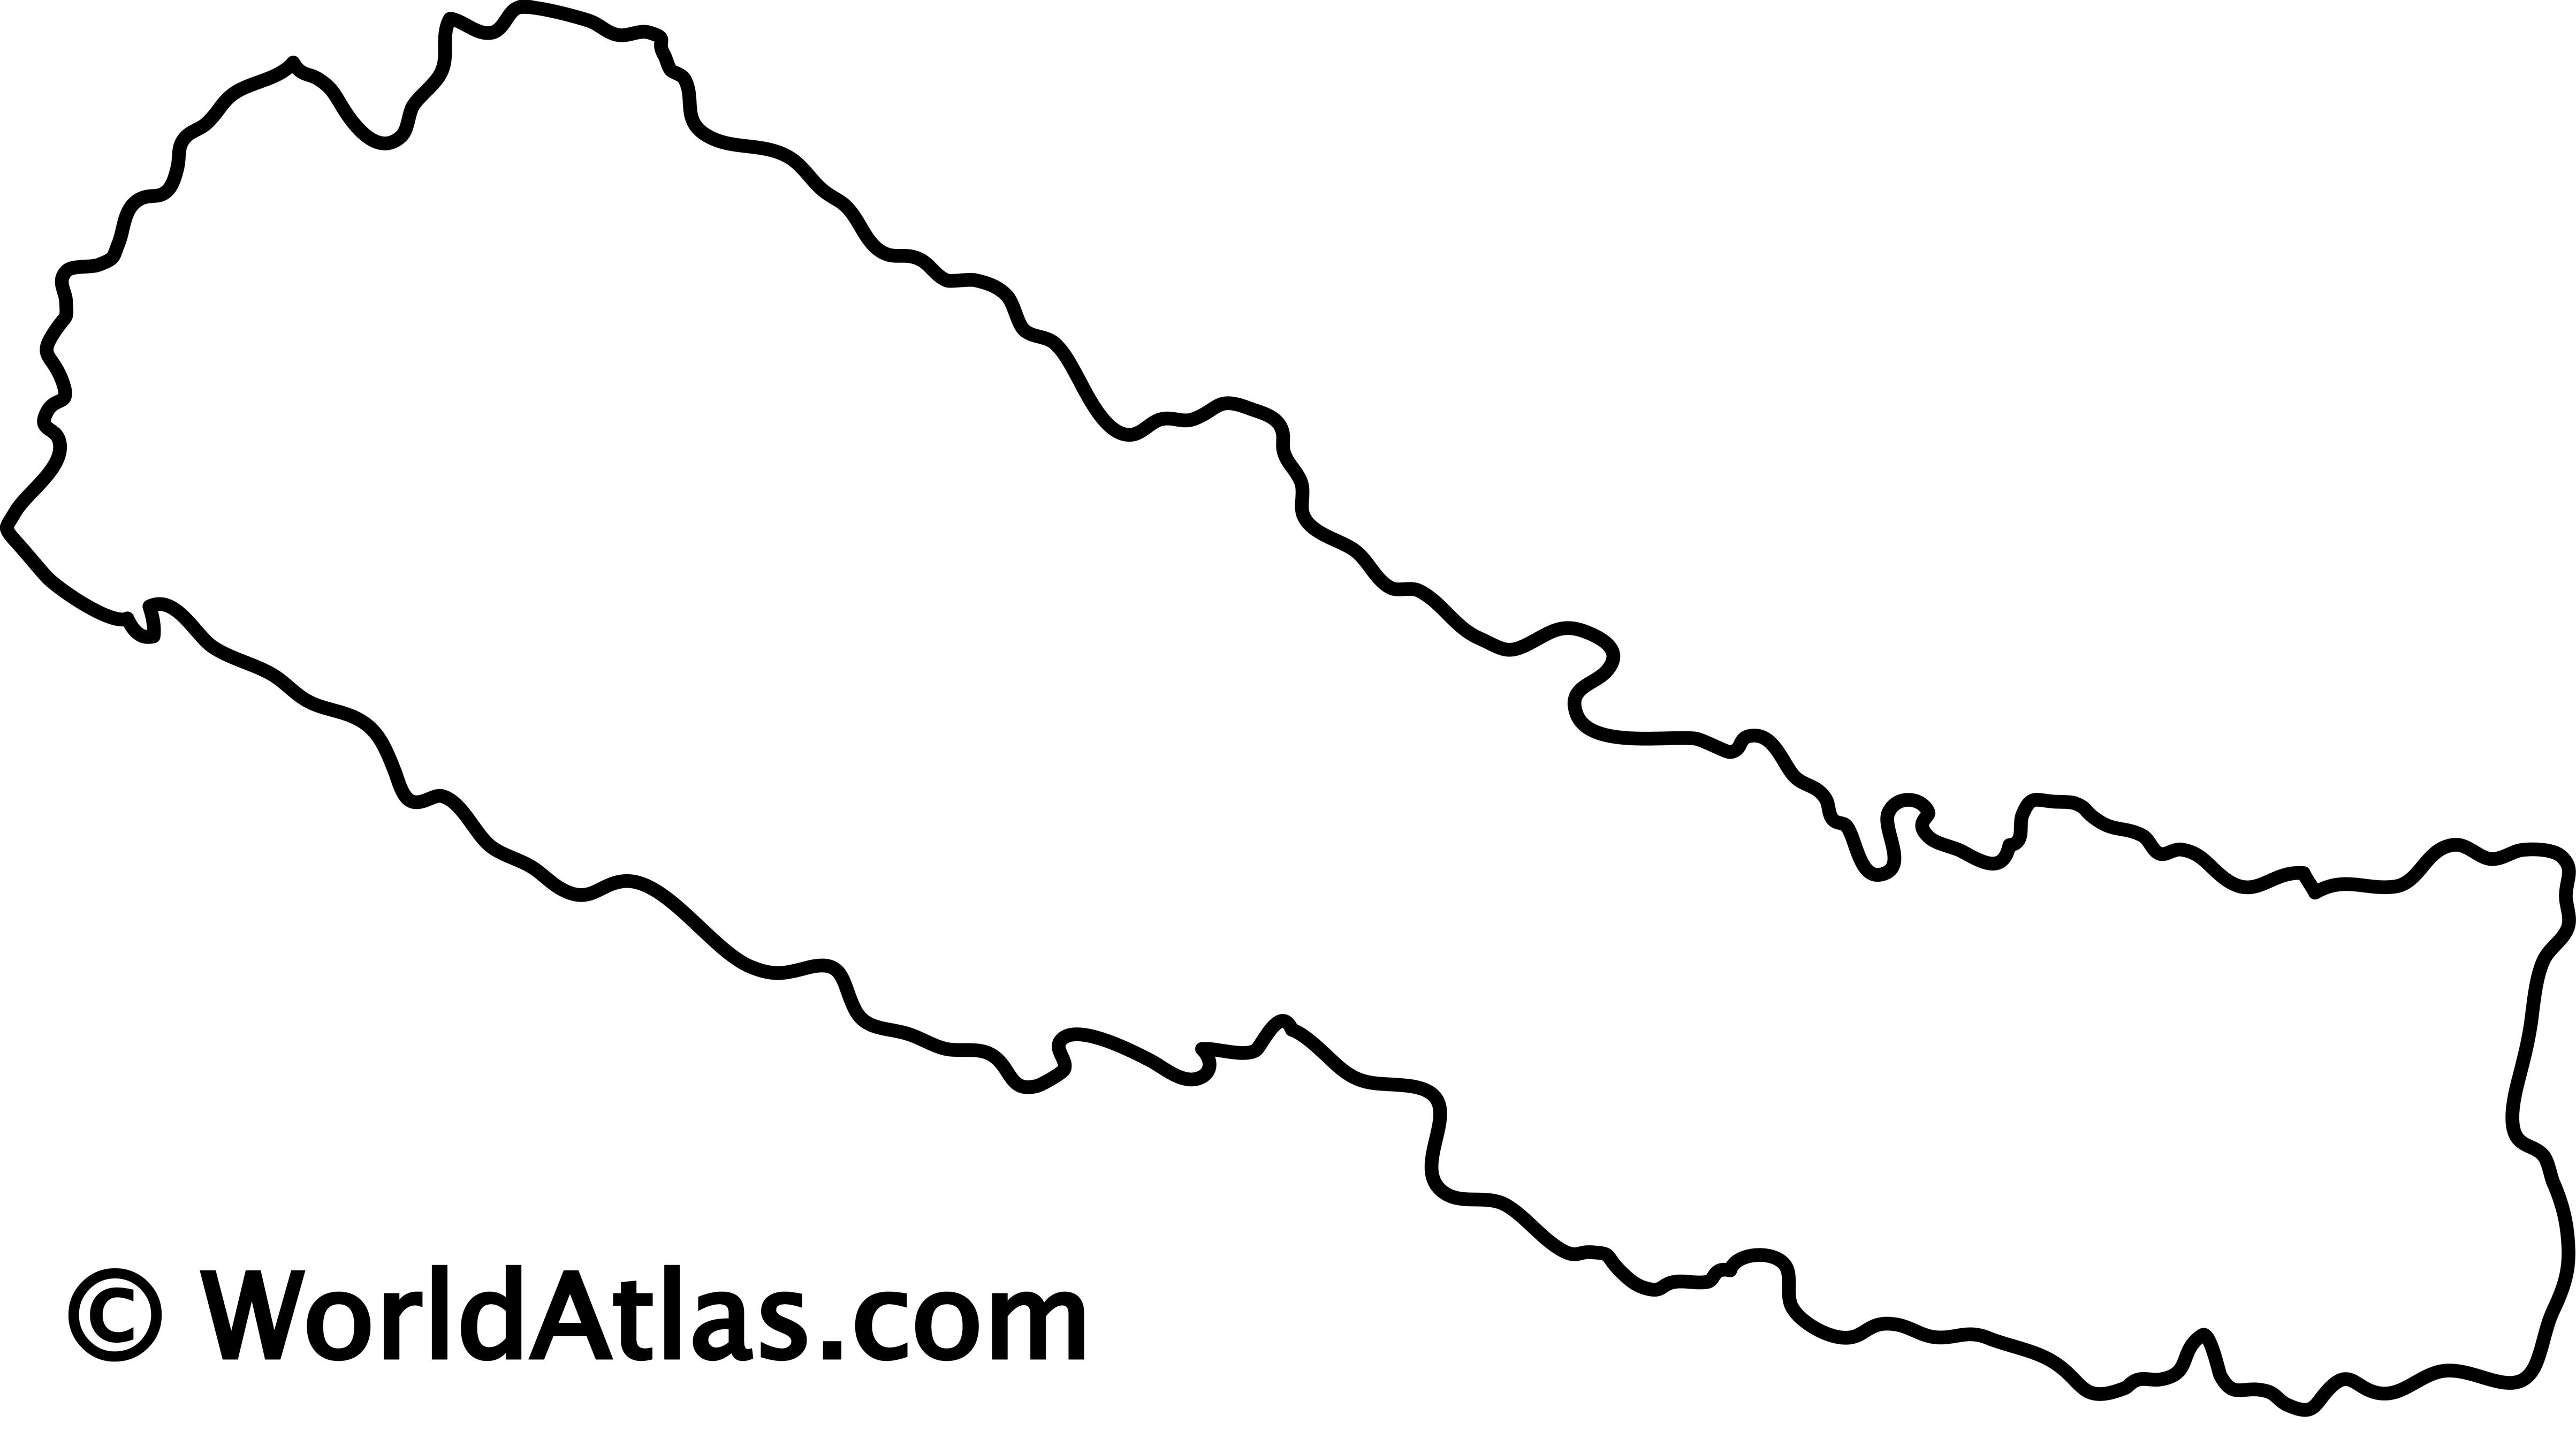 Blank Outline Map of Nepal